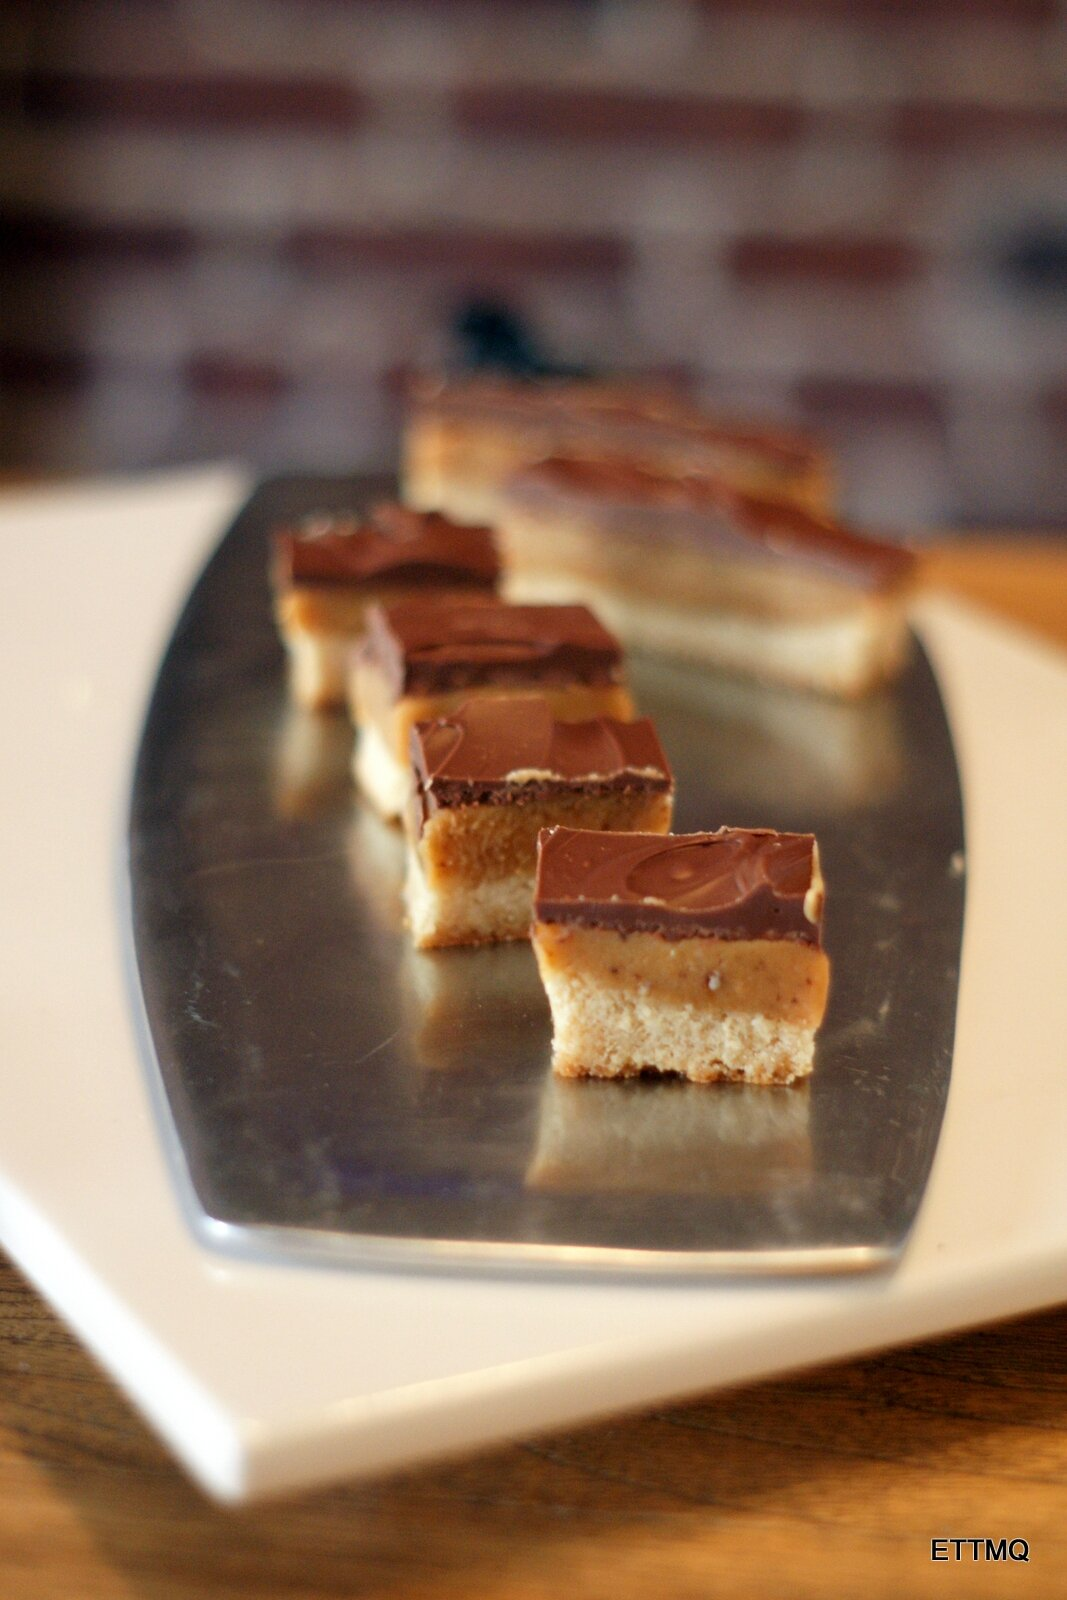 Millionaire's shortbread: My cake is (very) rich.